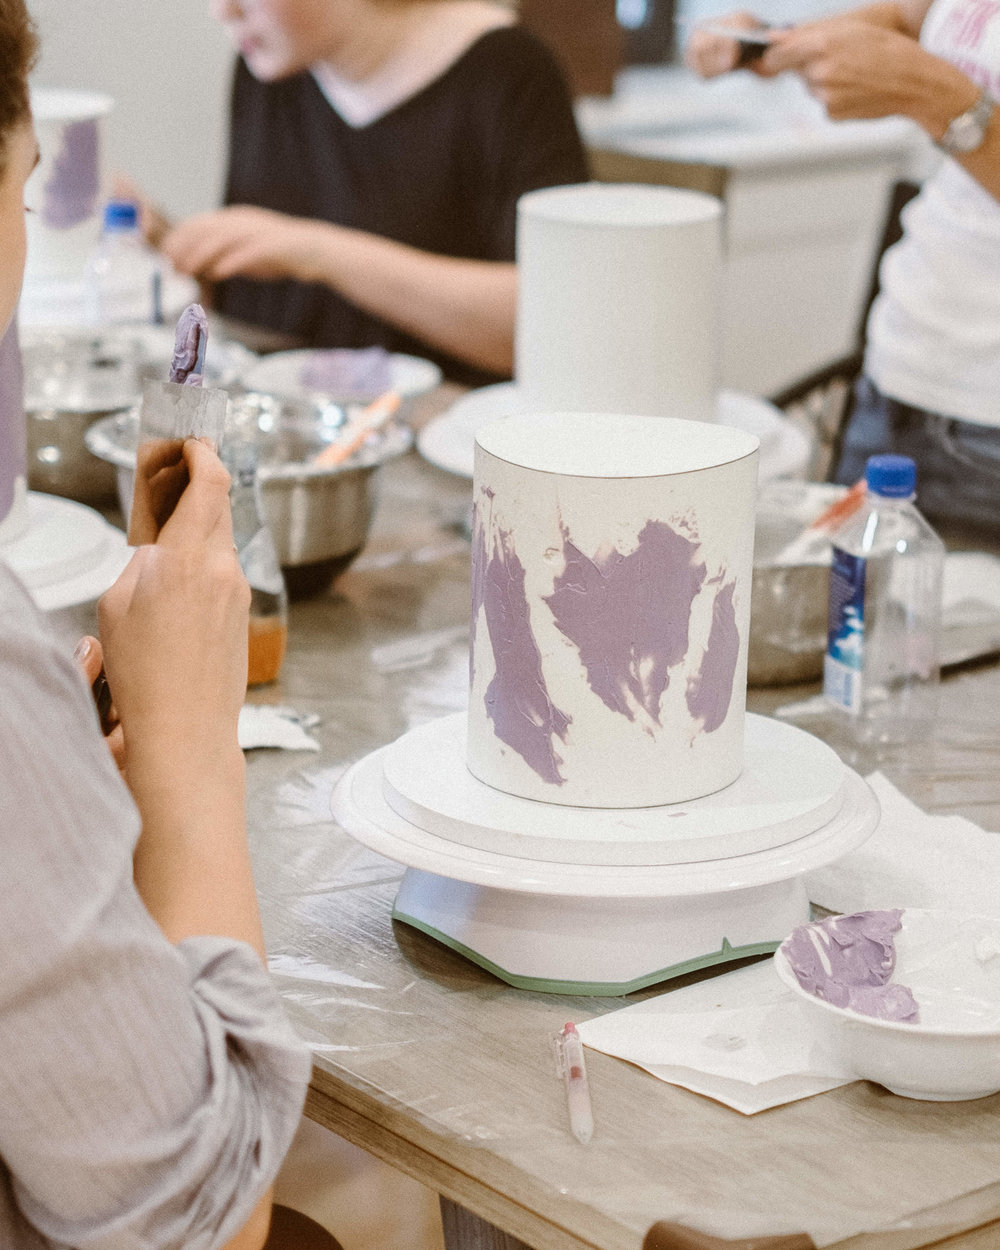 cakesbycliff_nyc_workshop03.jpg